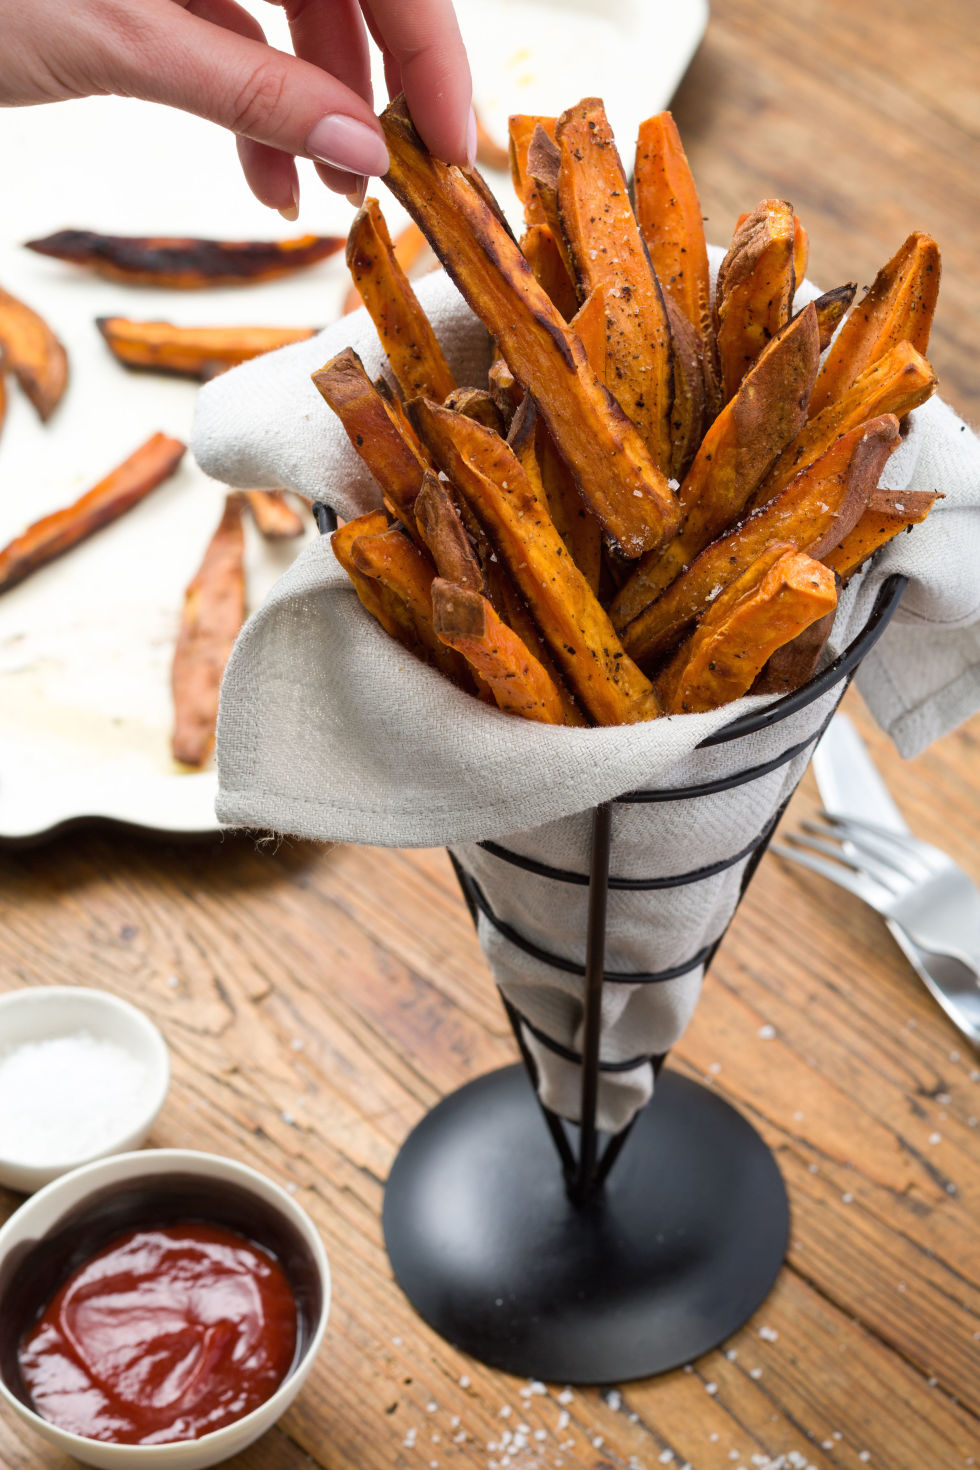 60 french fries recipe homemade french fry recipesdelish forumfinder Choice Image